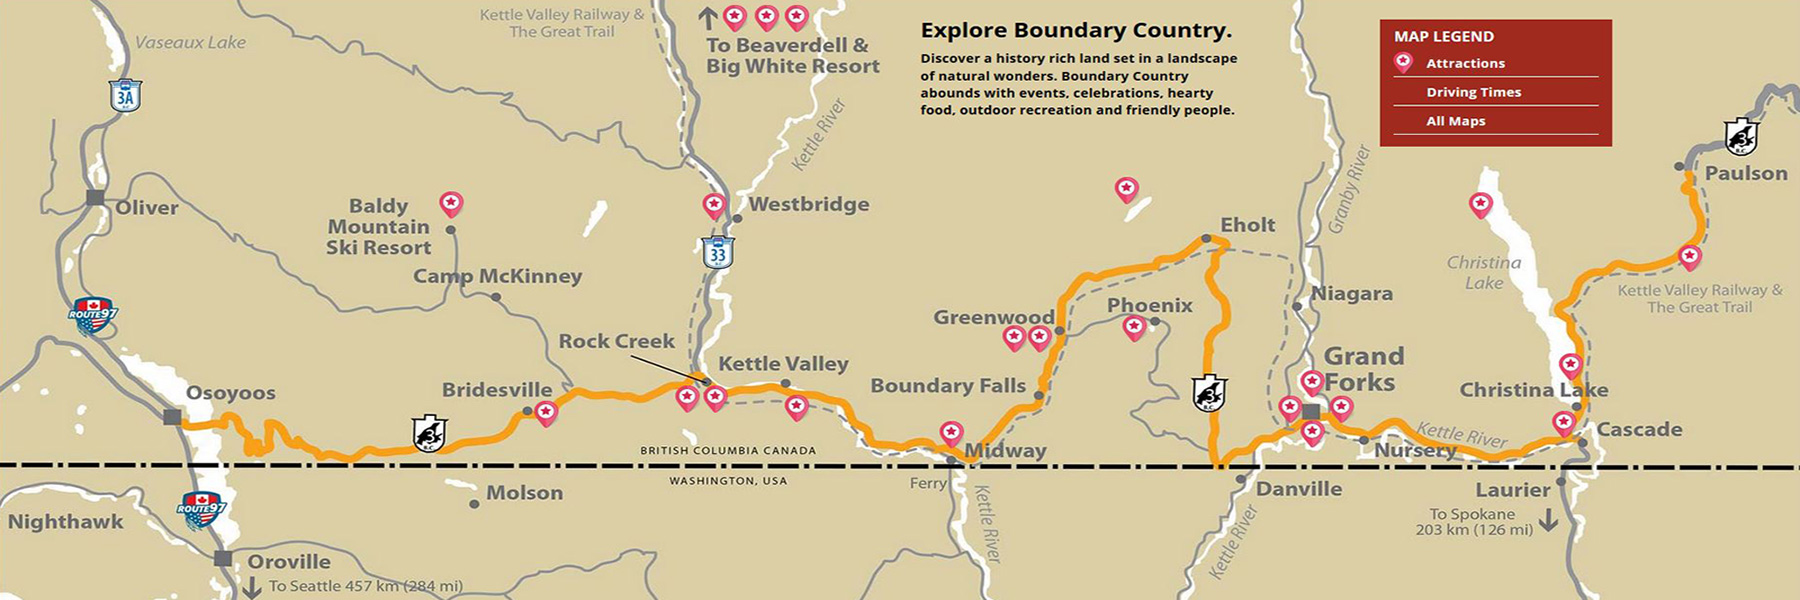 Boundary Country map